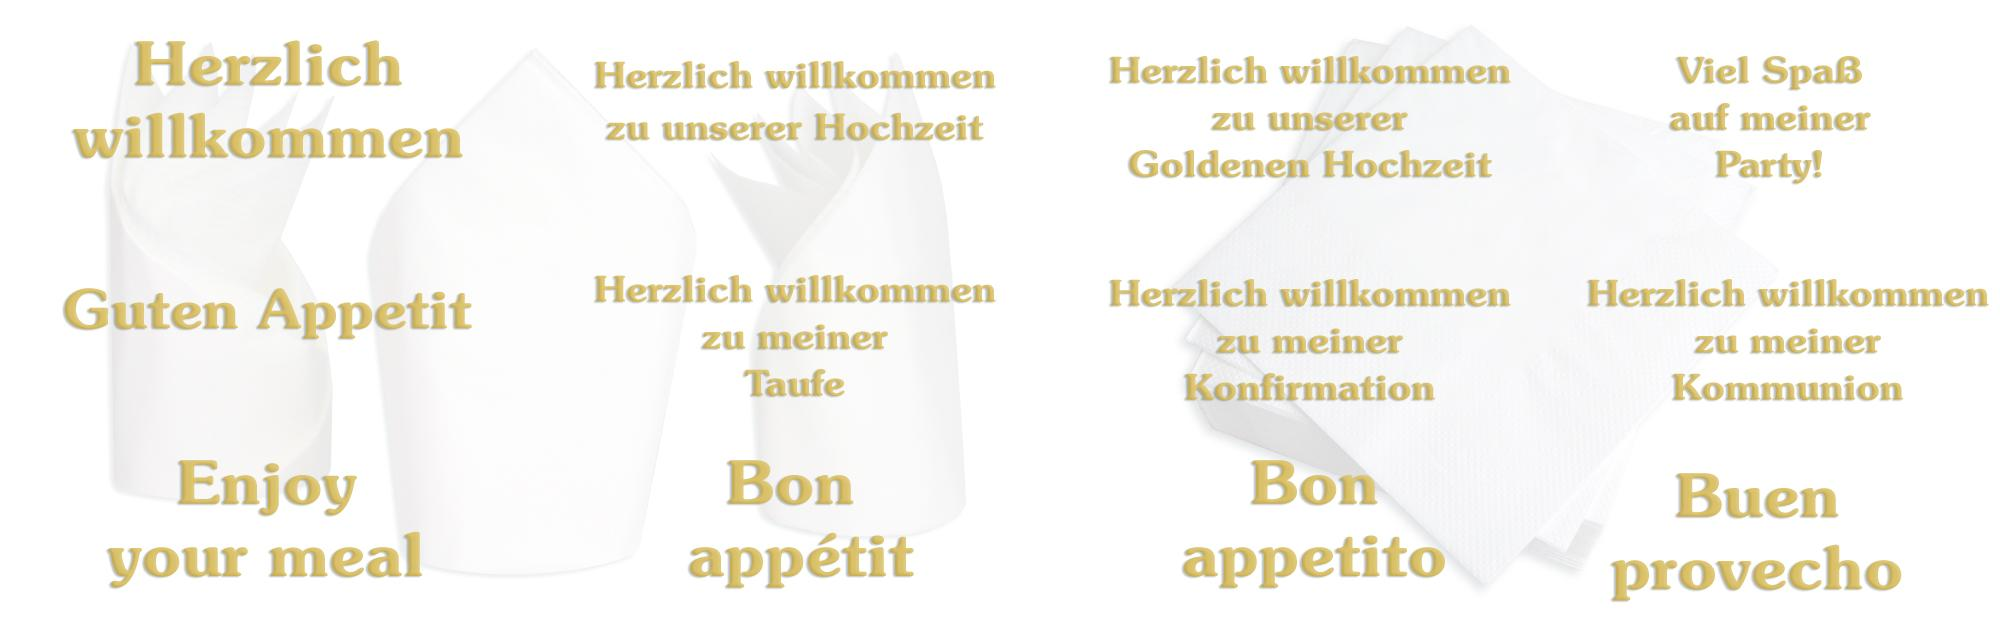 servietten bordeaux pr gung in gold schrift herzlich willkommen zu unserer goldenen hochzeit. Black Bedroom Furniture Sets. Home Design Ideas